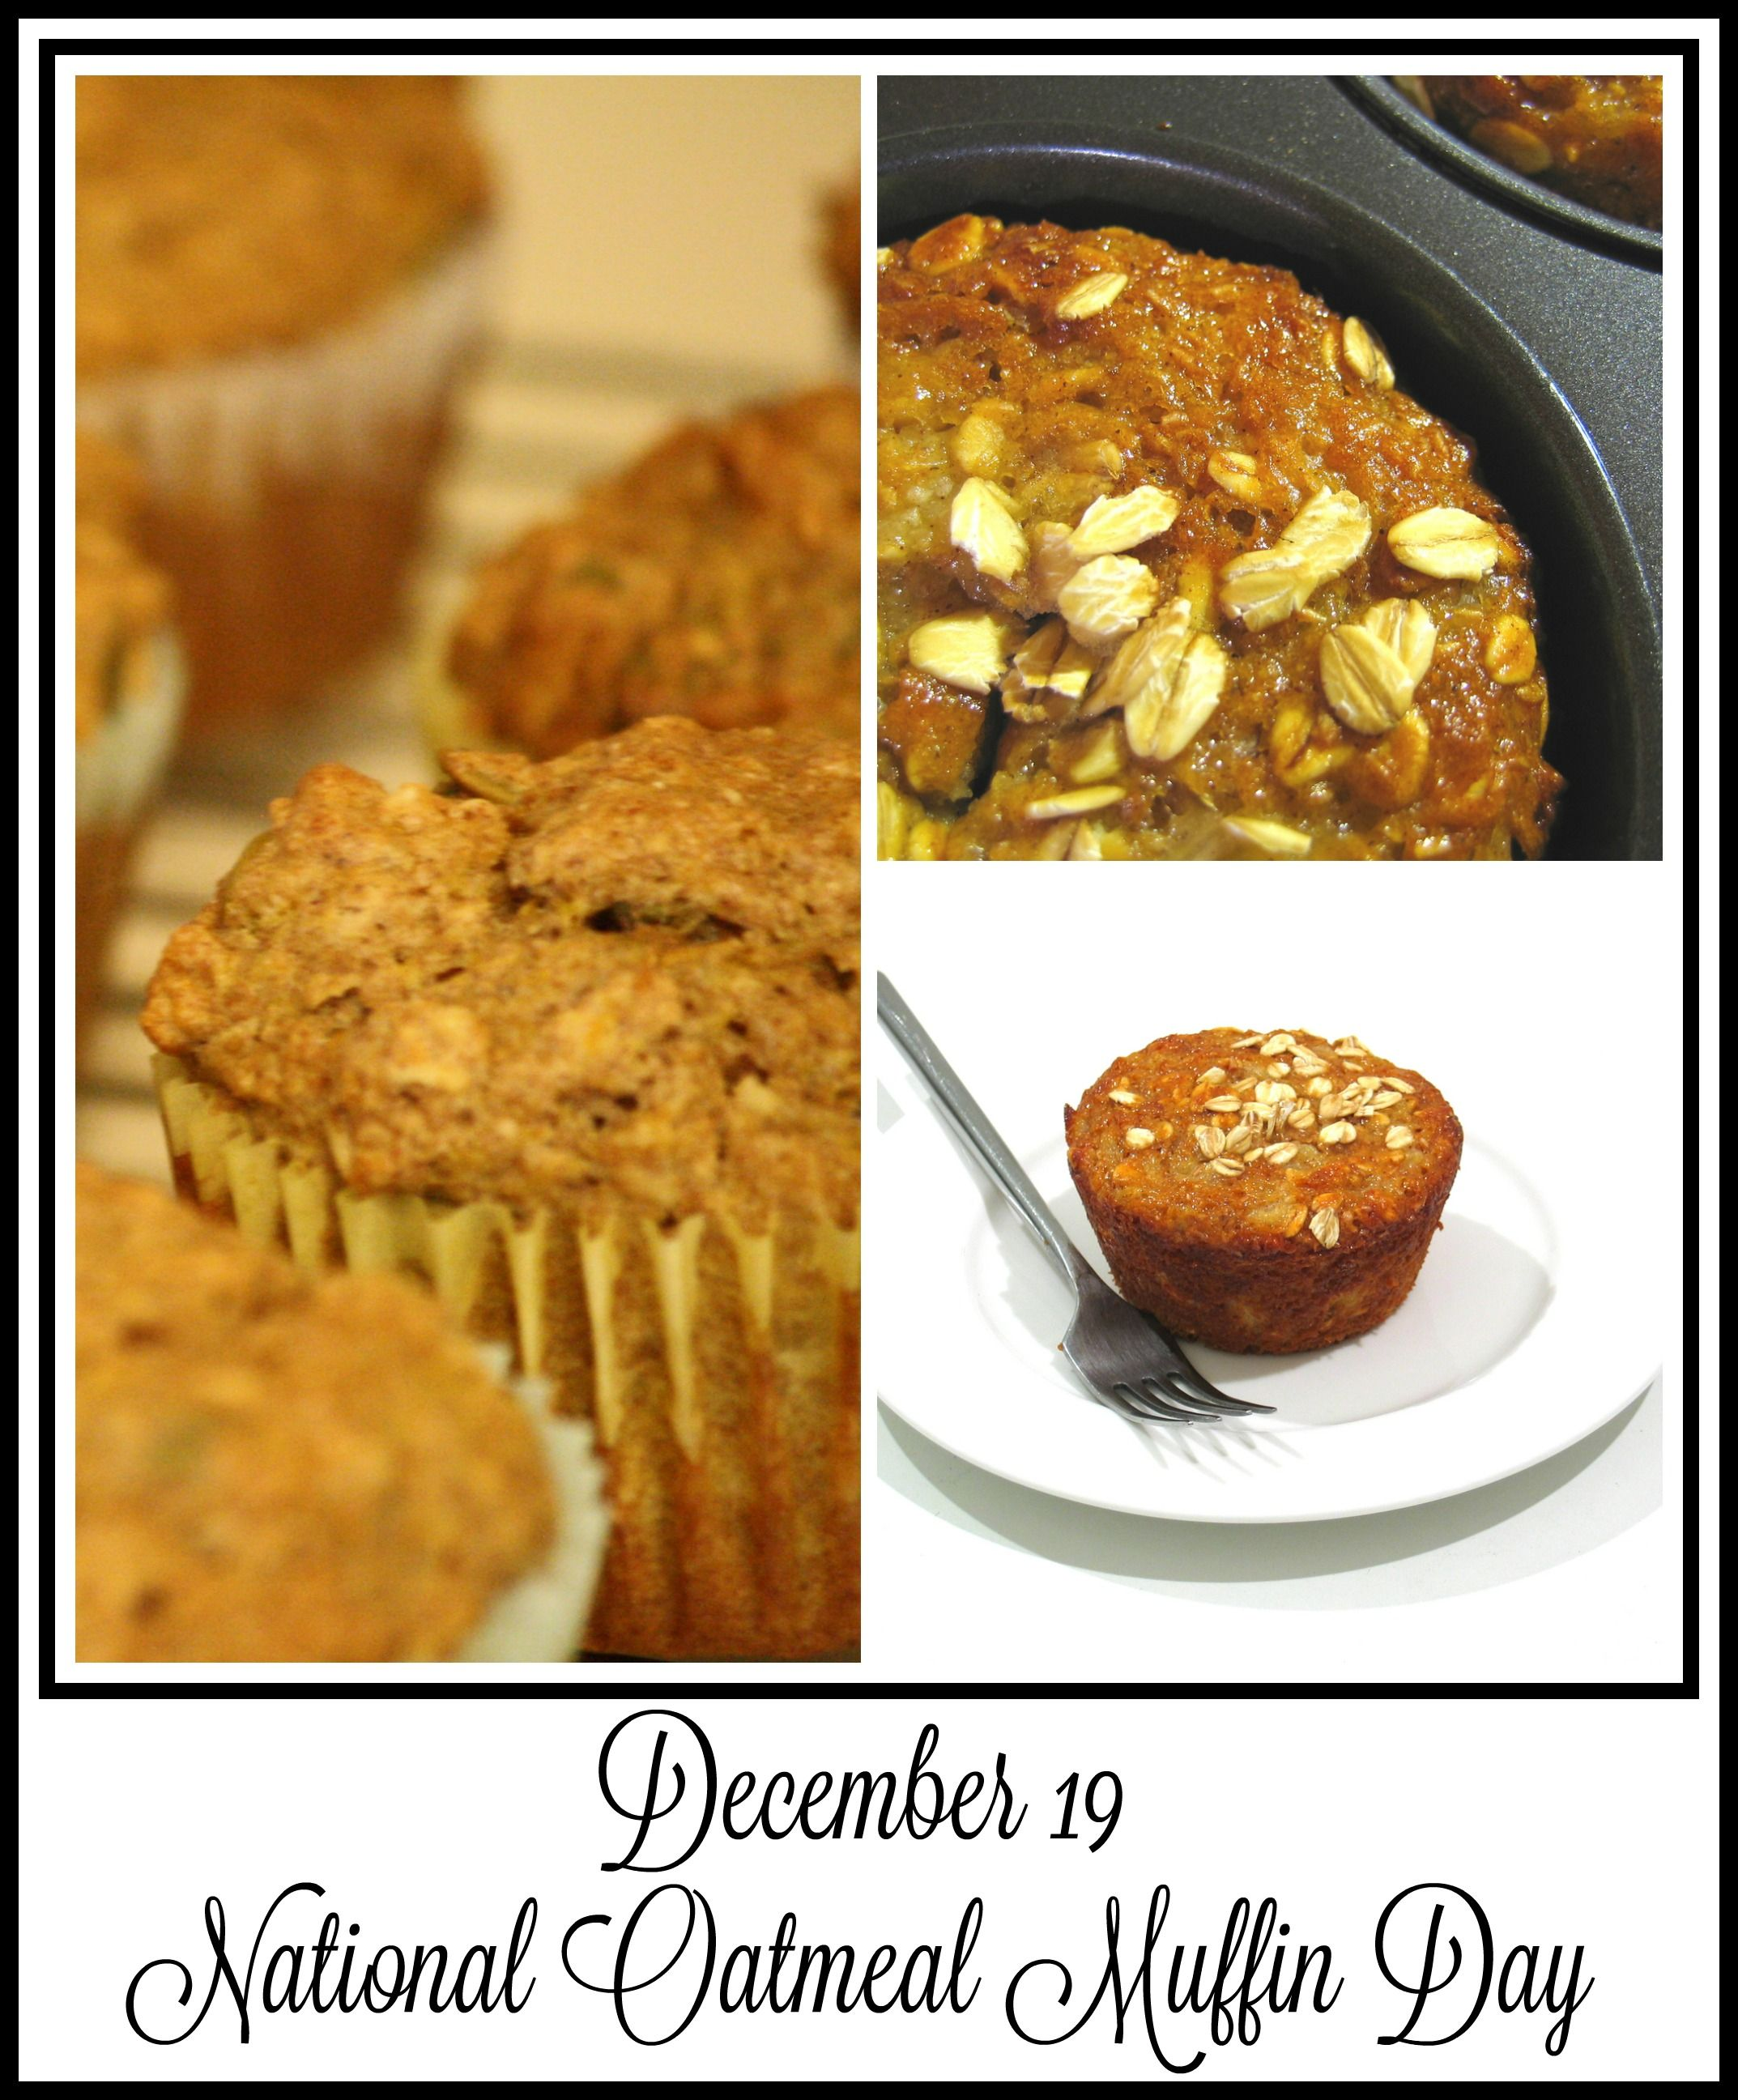 Food Holidays December 19 National Oatmeal Muffin Day Holiday Recipes Food Oatmeal Muffins